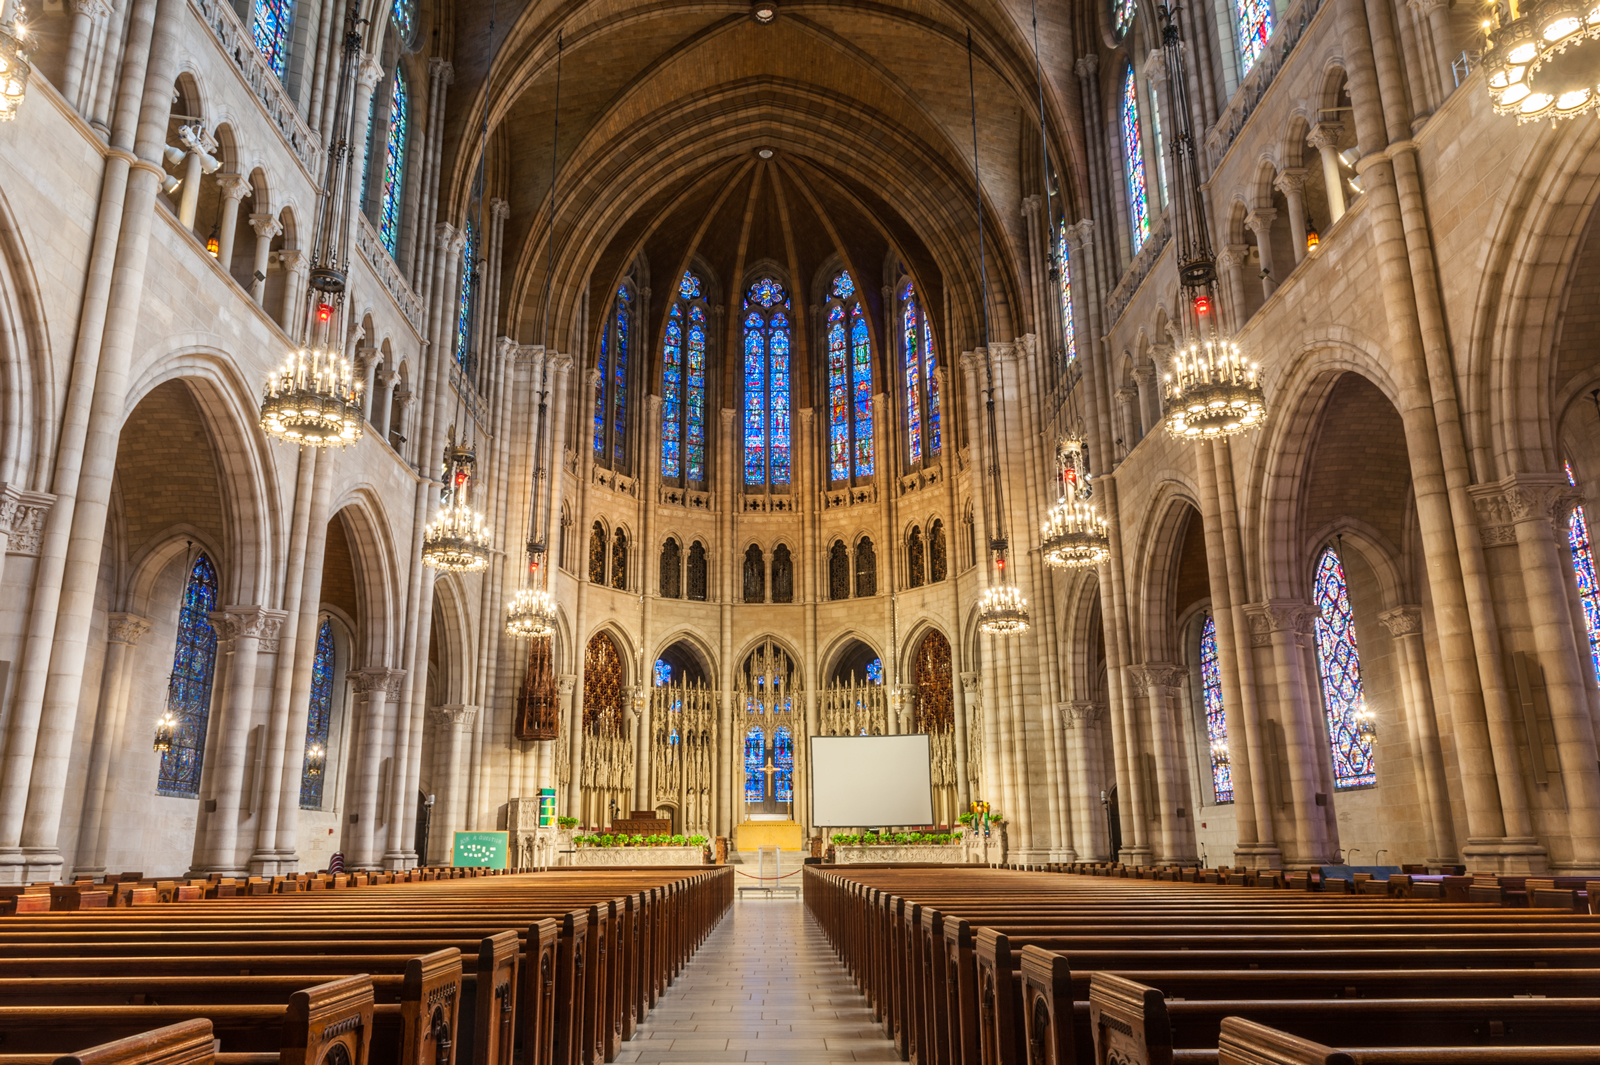 Riverside_Church_021-HDR.jpg